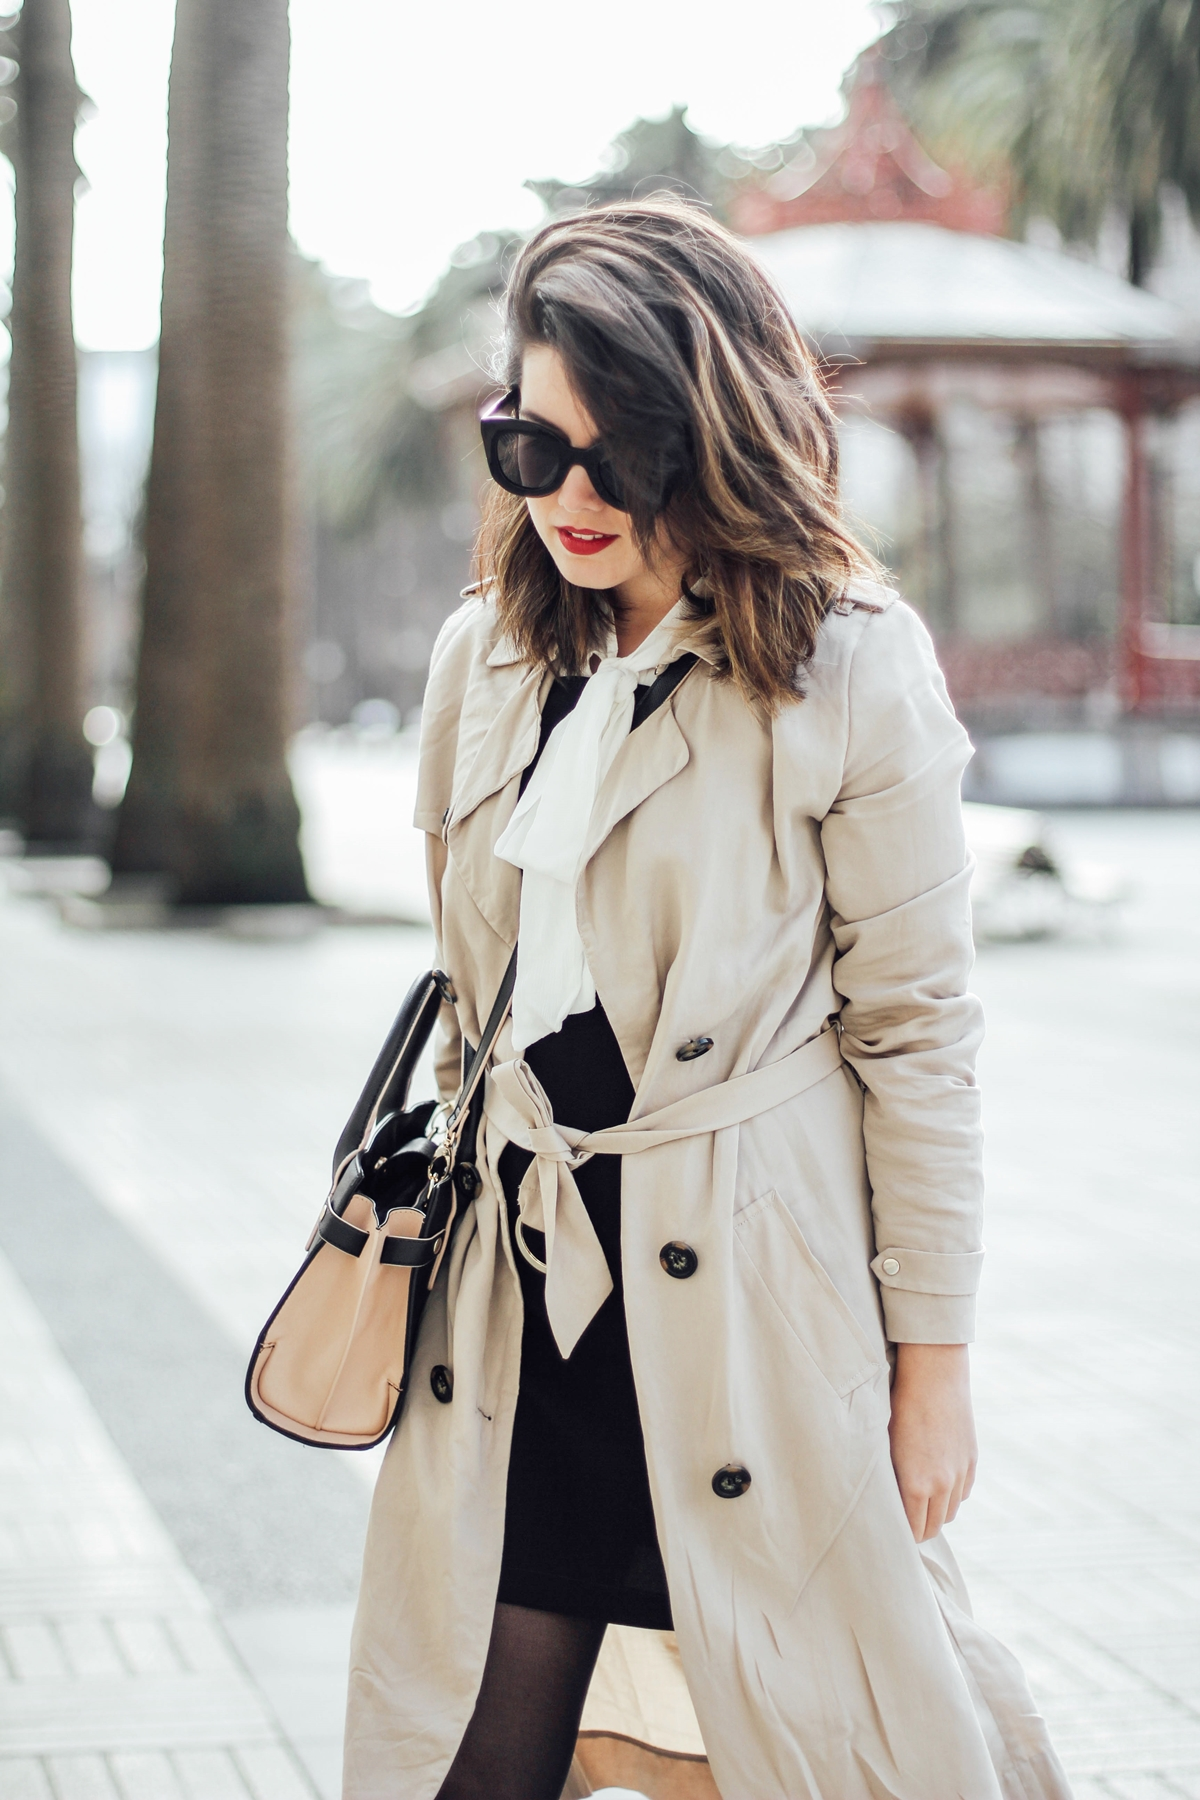 styleheroes-dorothy-perkins-pinafore-dress-trench-baby-marta-celine-sunglasses-streetstyle myblueberrynightsblog